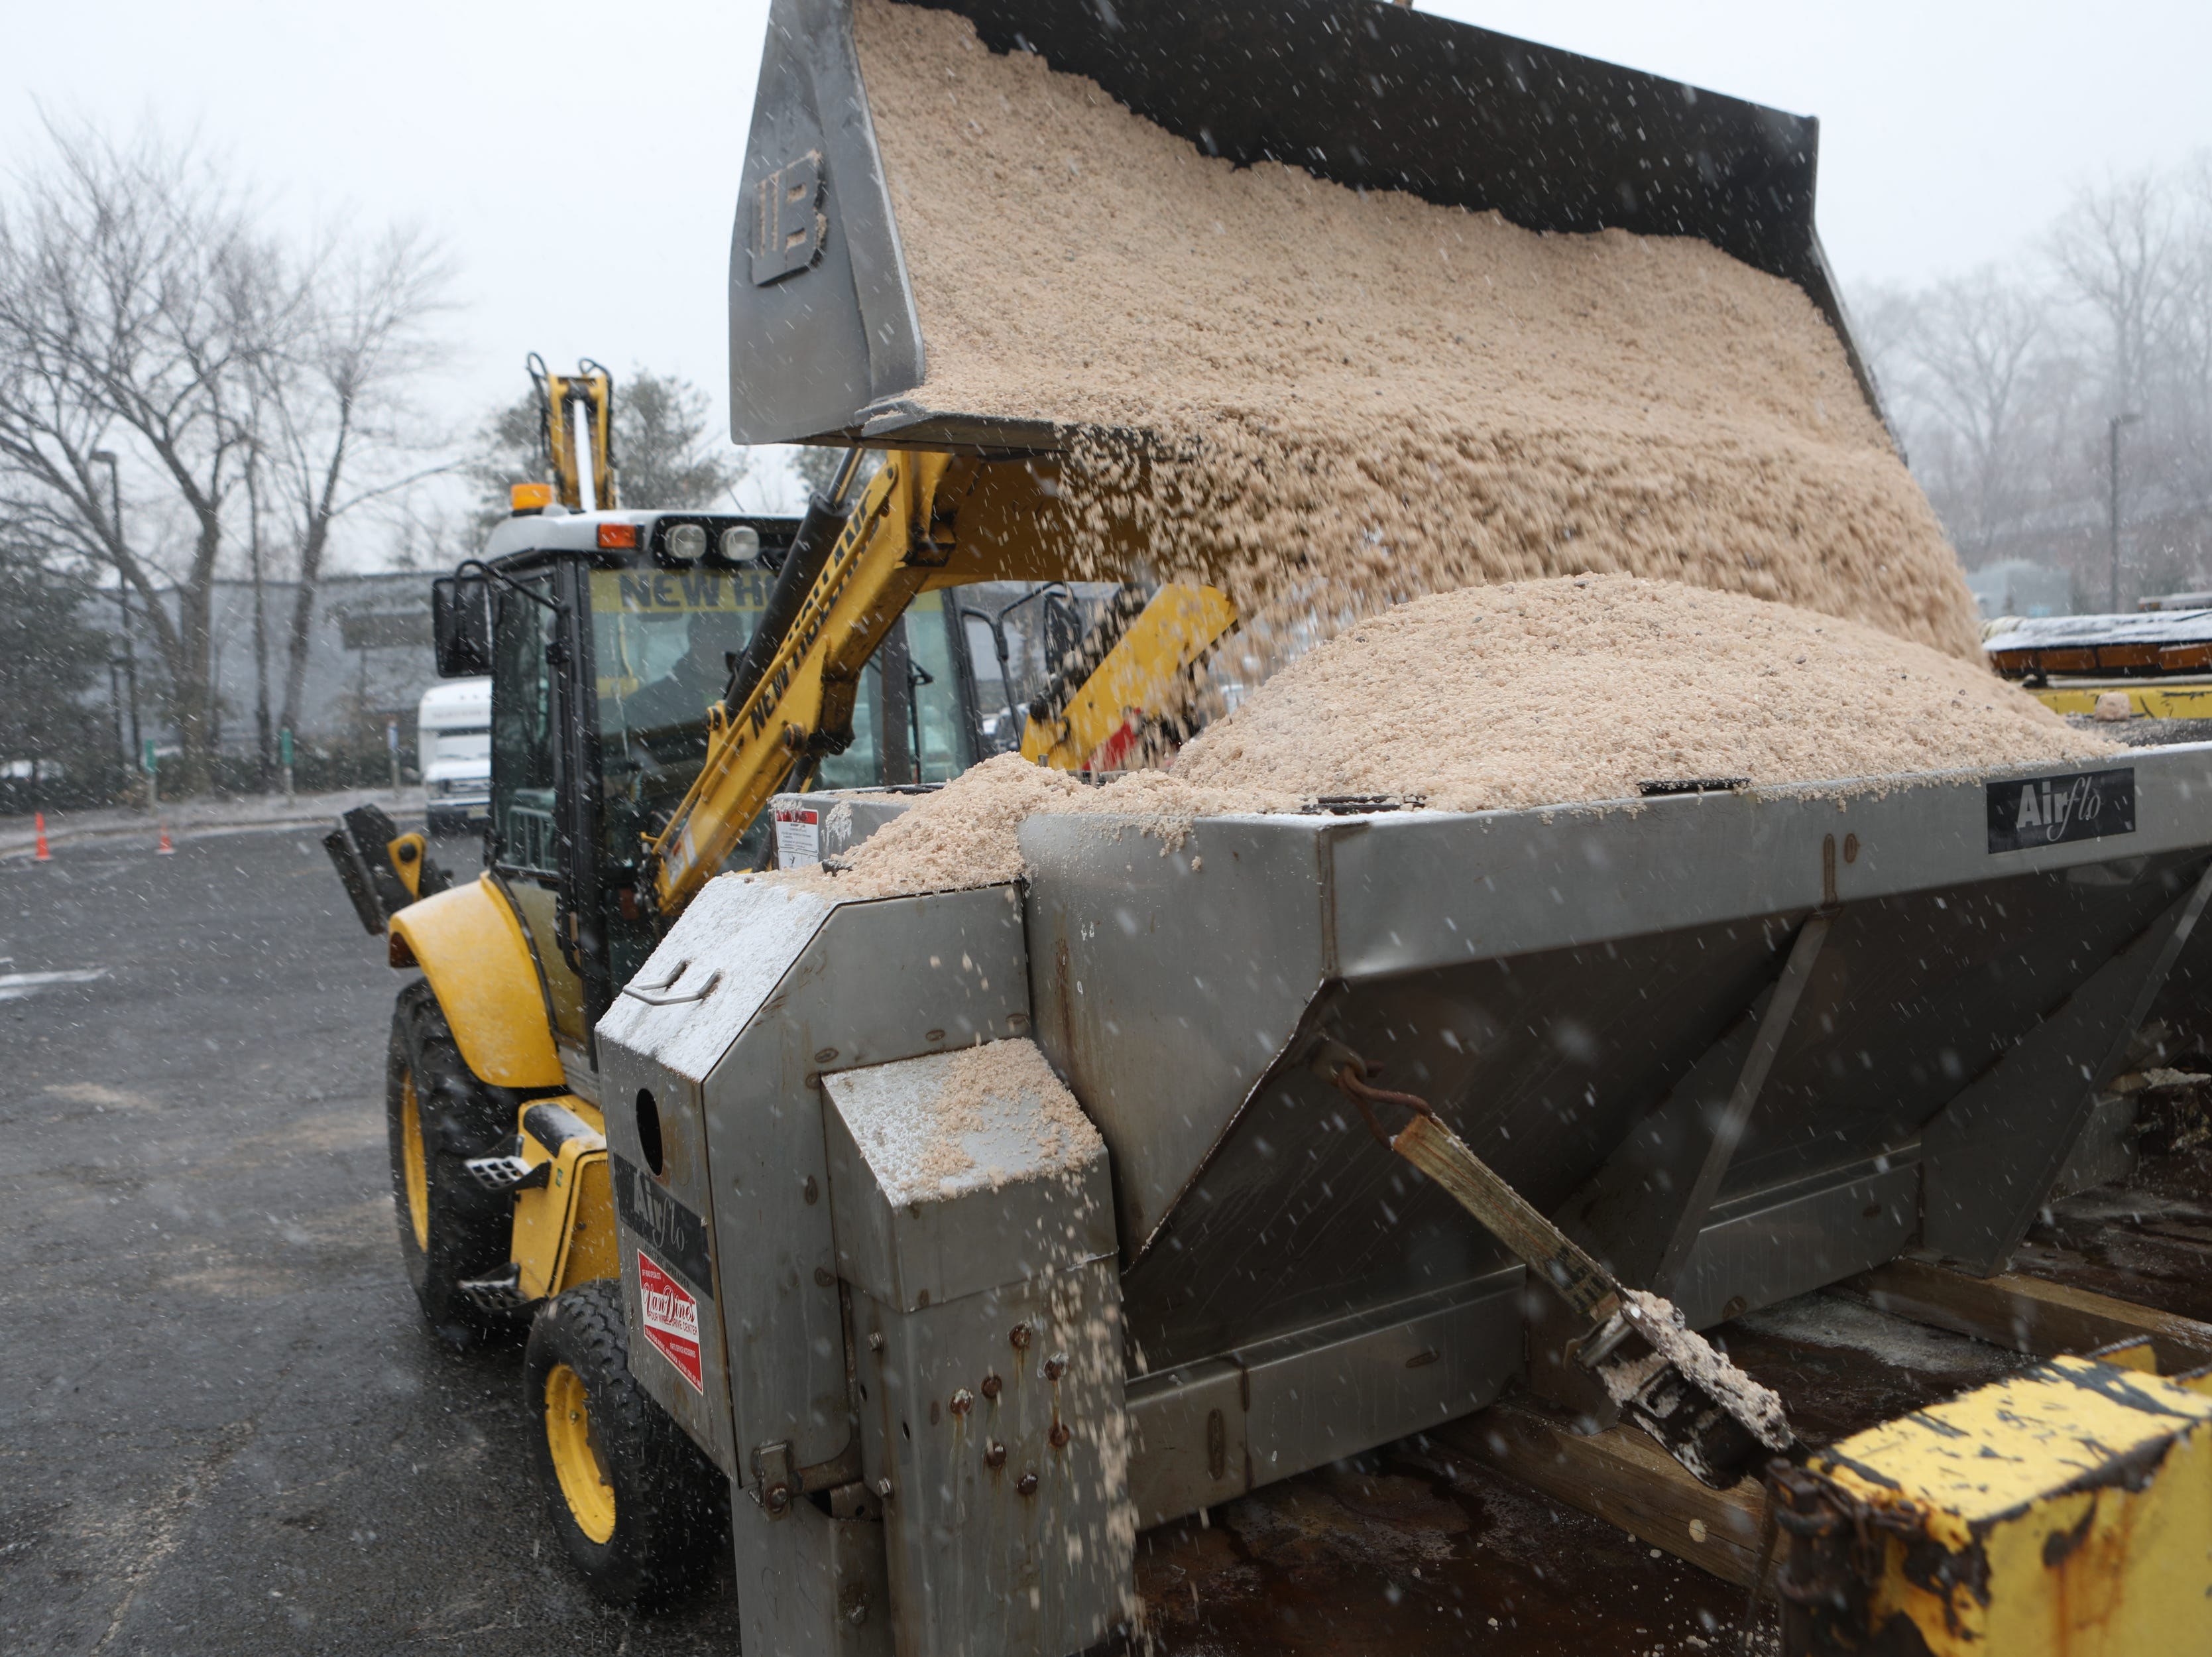 Workers at the Paramus Department of Public Works, get ready to treat the roads, Wednesday, February 20, 2019.